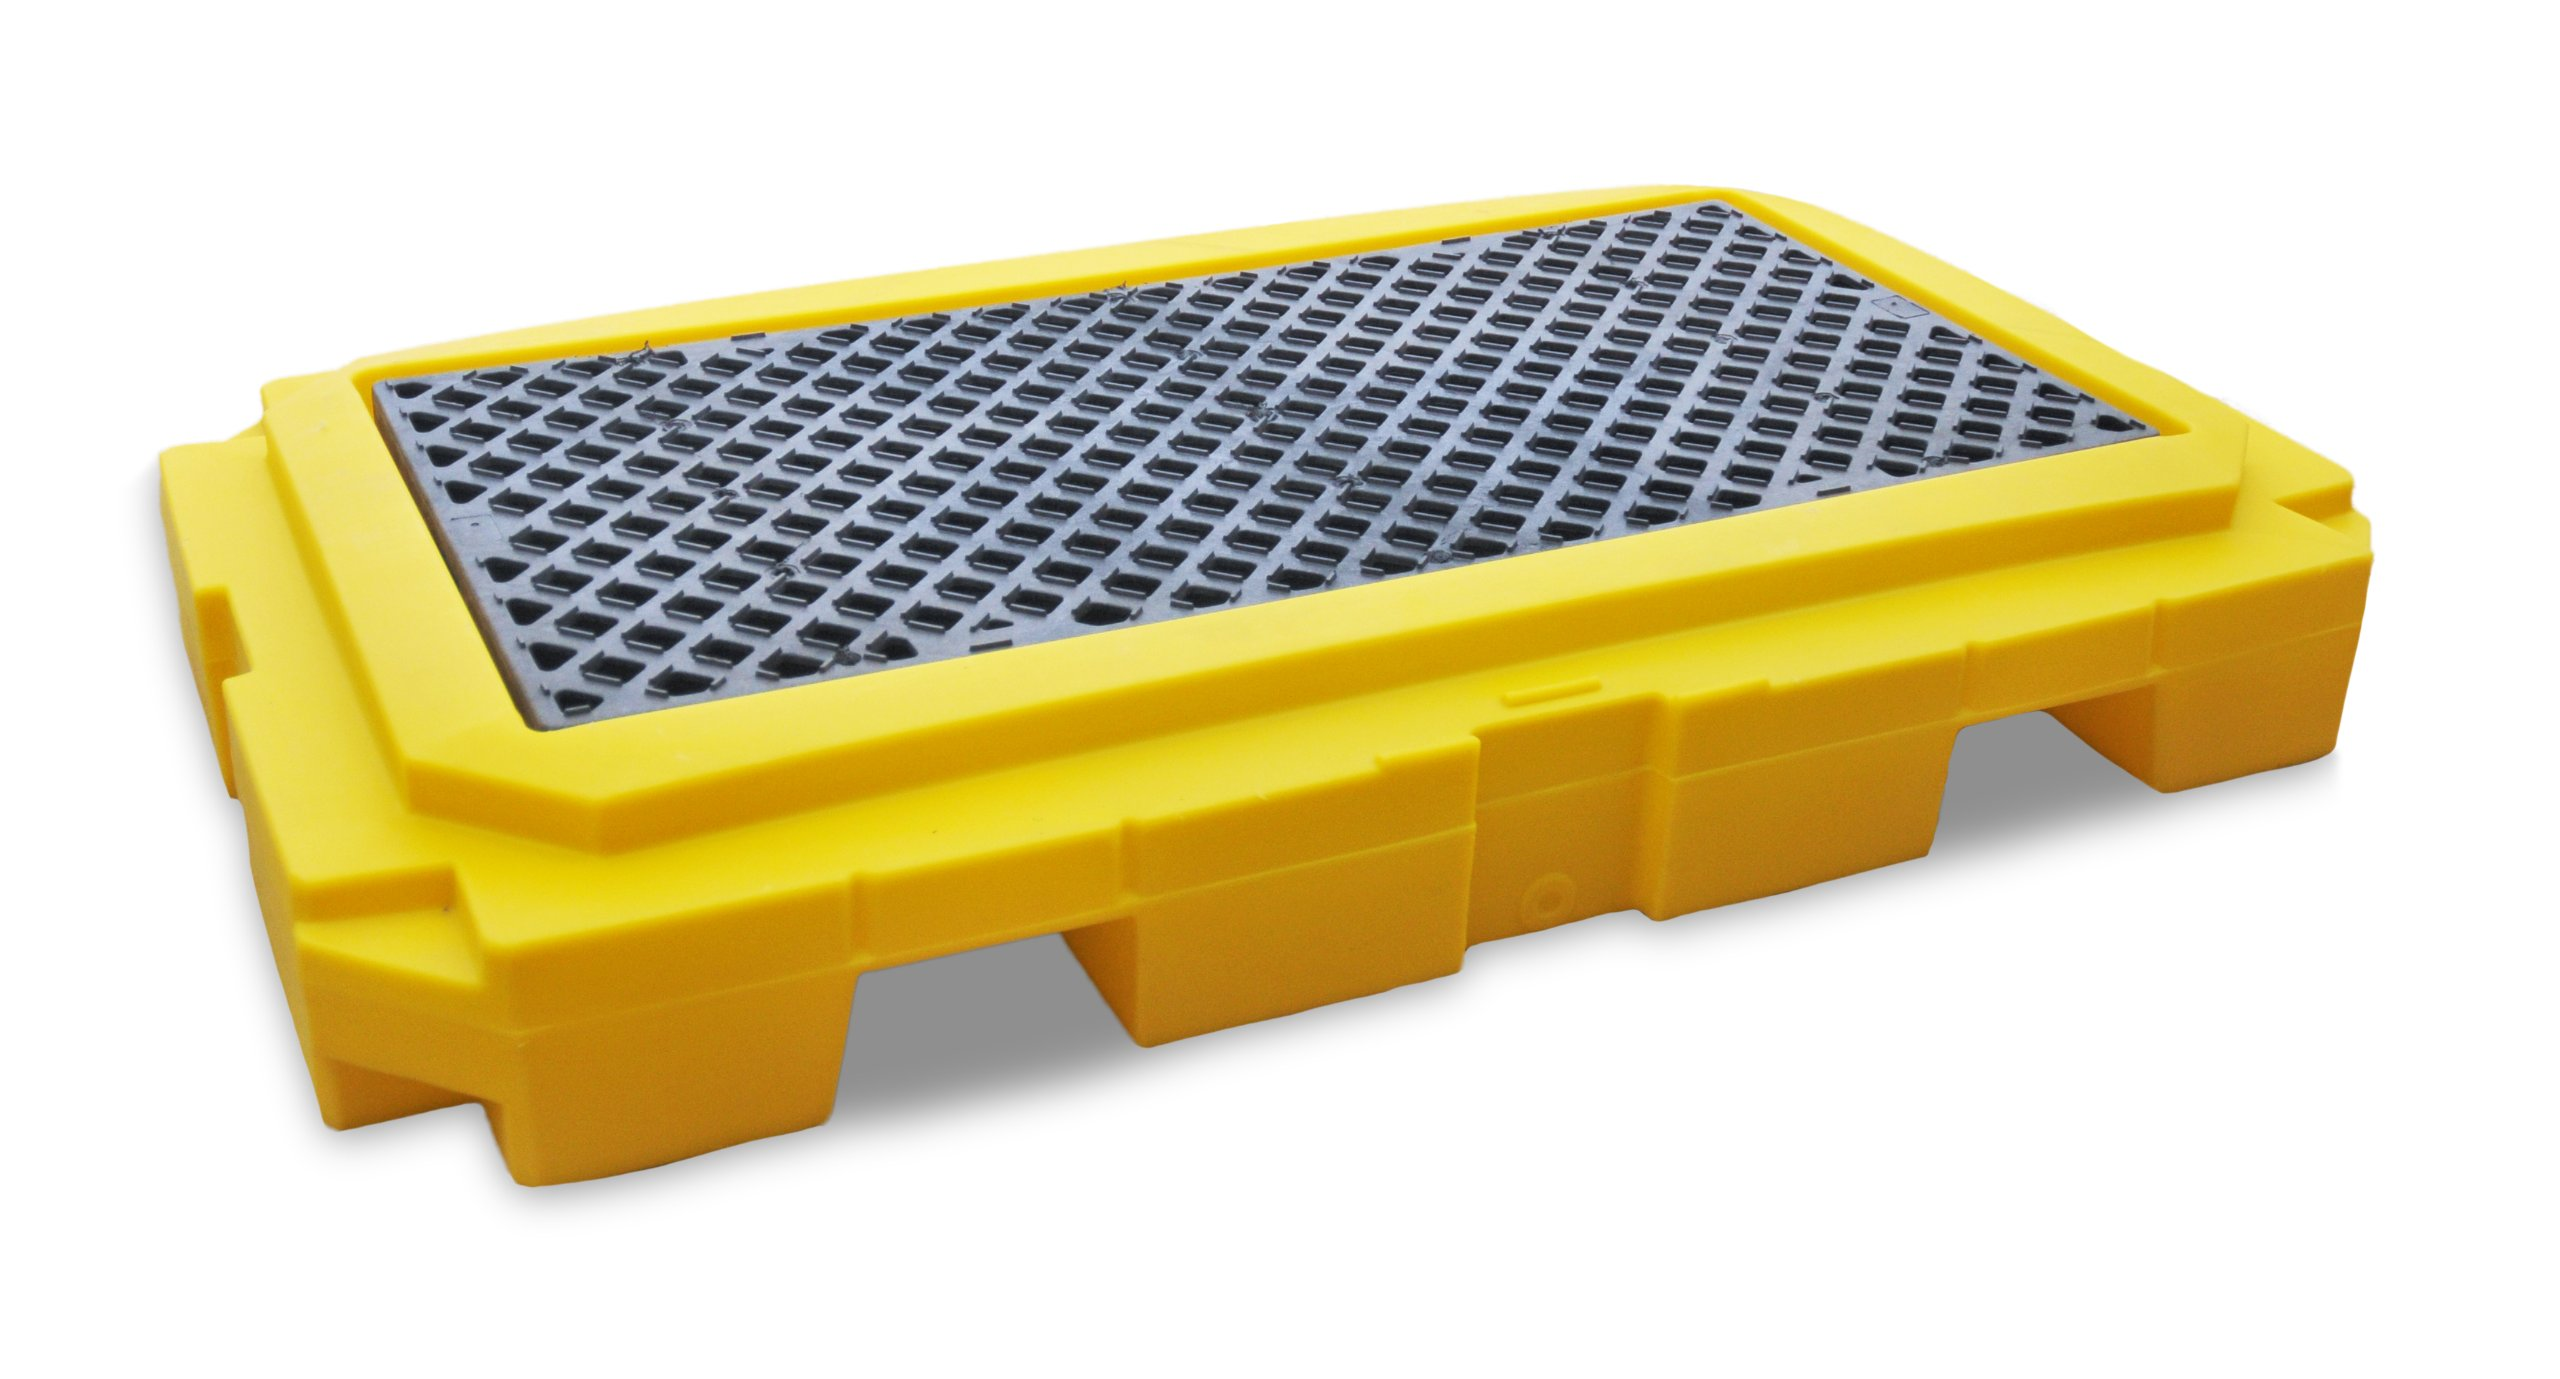 UltraTech 9611 Premier Polyethylene Ultra-Spill Pallet P2 Plus with Drain, 4500 lbs Capacity, 5 Year Warranty, Yellow